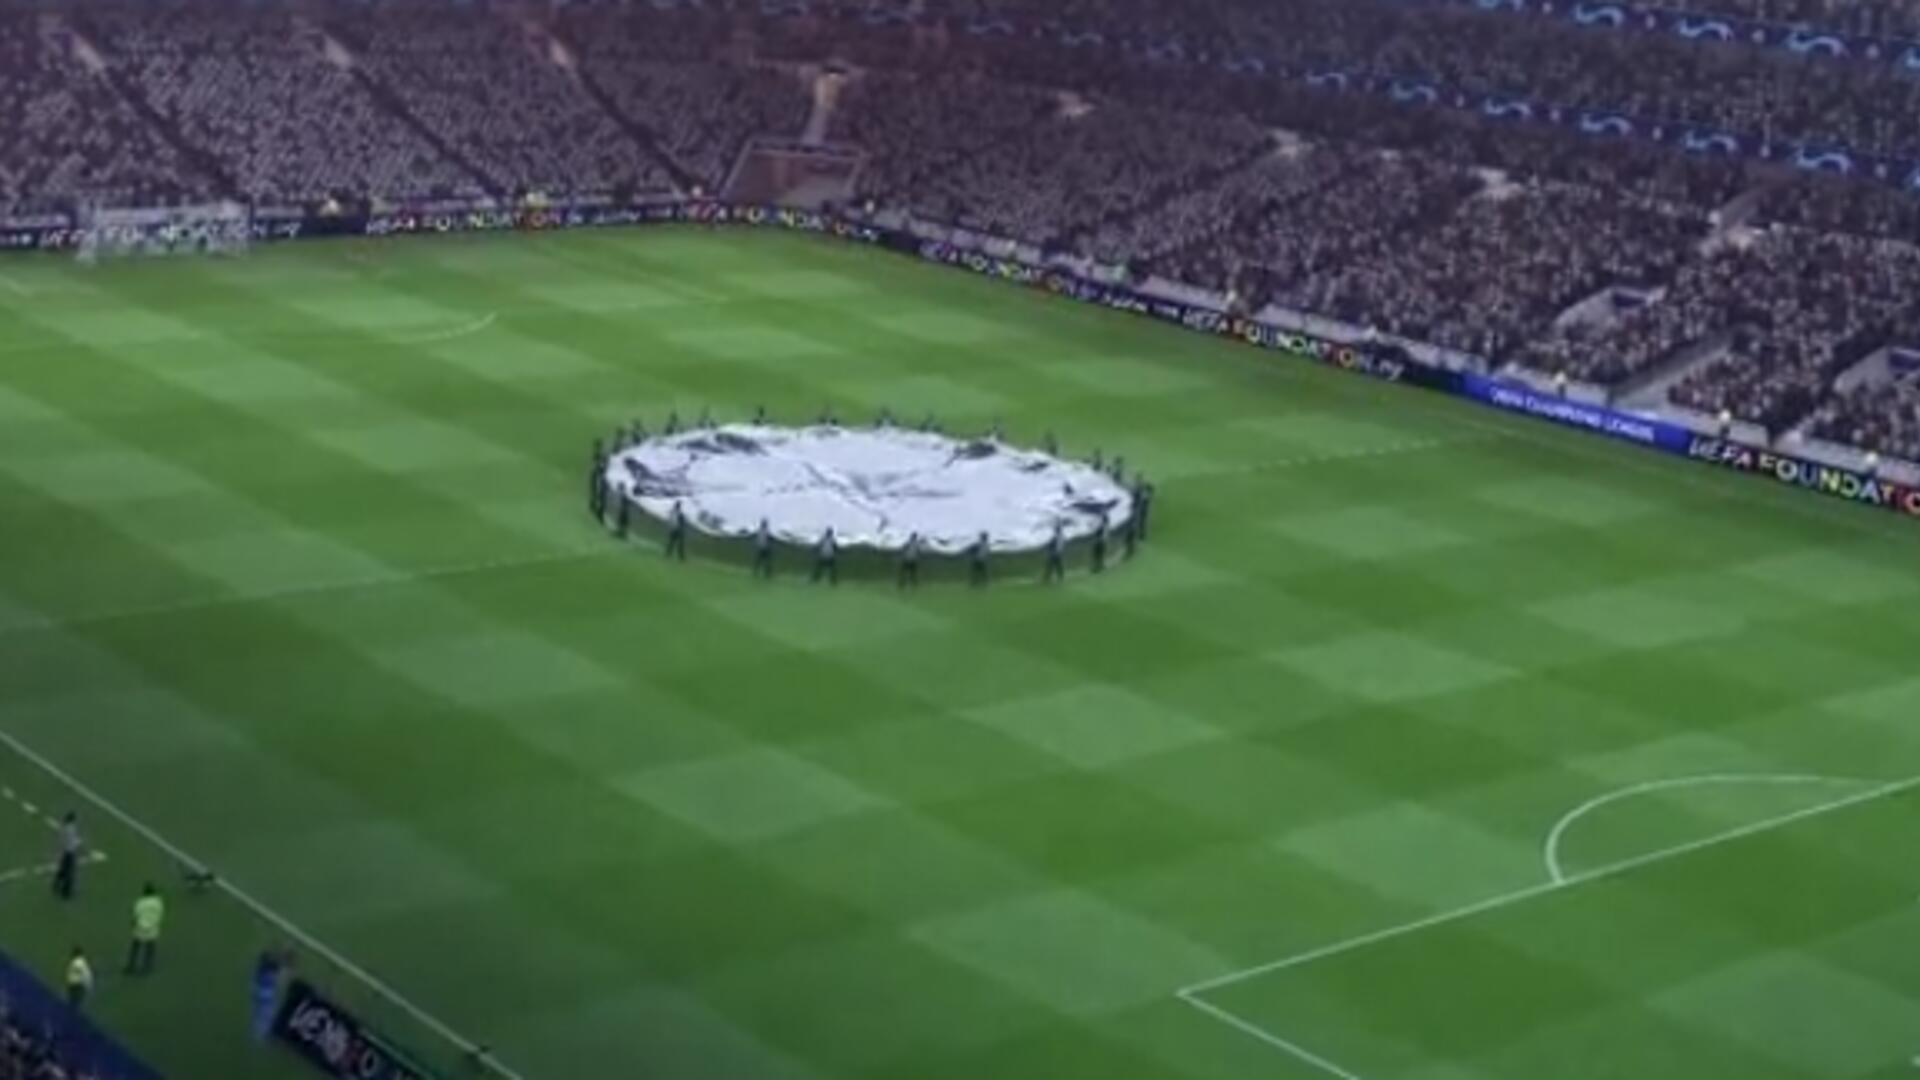 FIFA 19 Has a (Virtual) Sneak Peek of the New Tottenham Hotspur Stadium